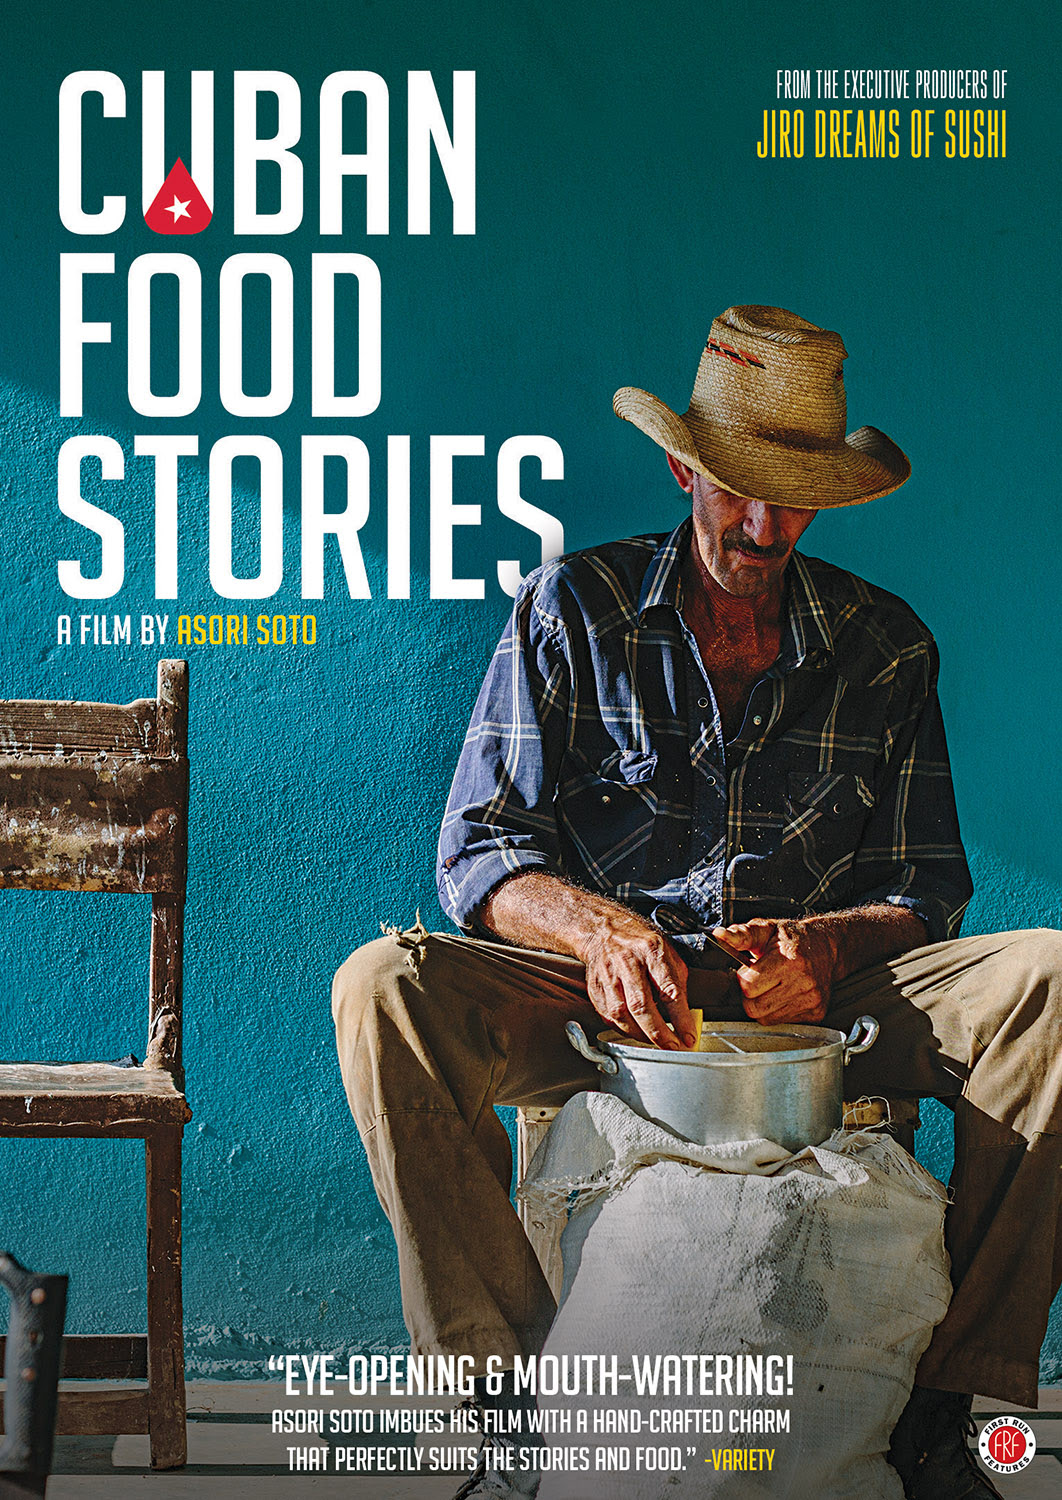 Cuban Food Stories Movie Poster.jpg